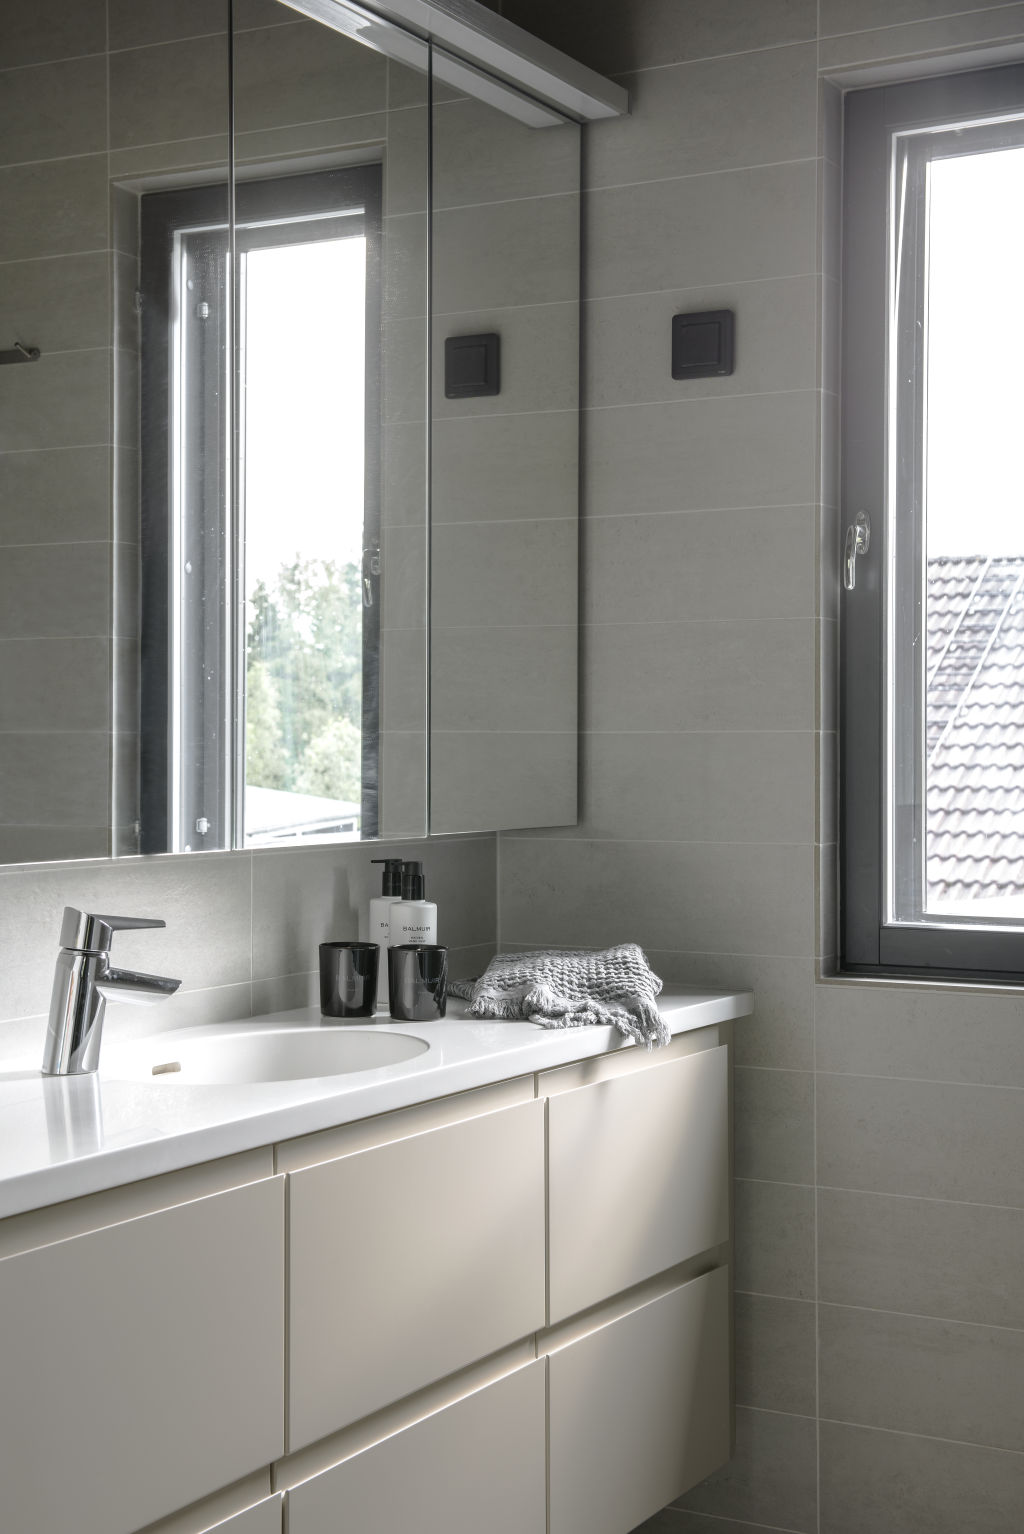 The upstairs bathroom is furnished with Kontio Living range of a white coffee shade.